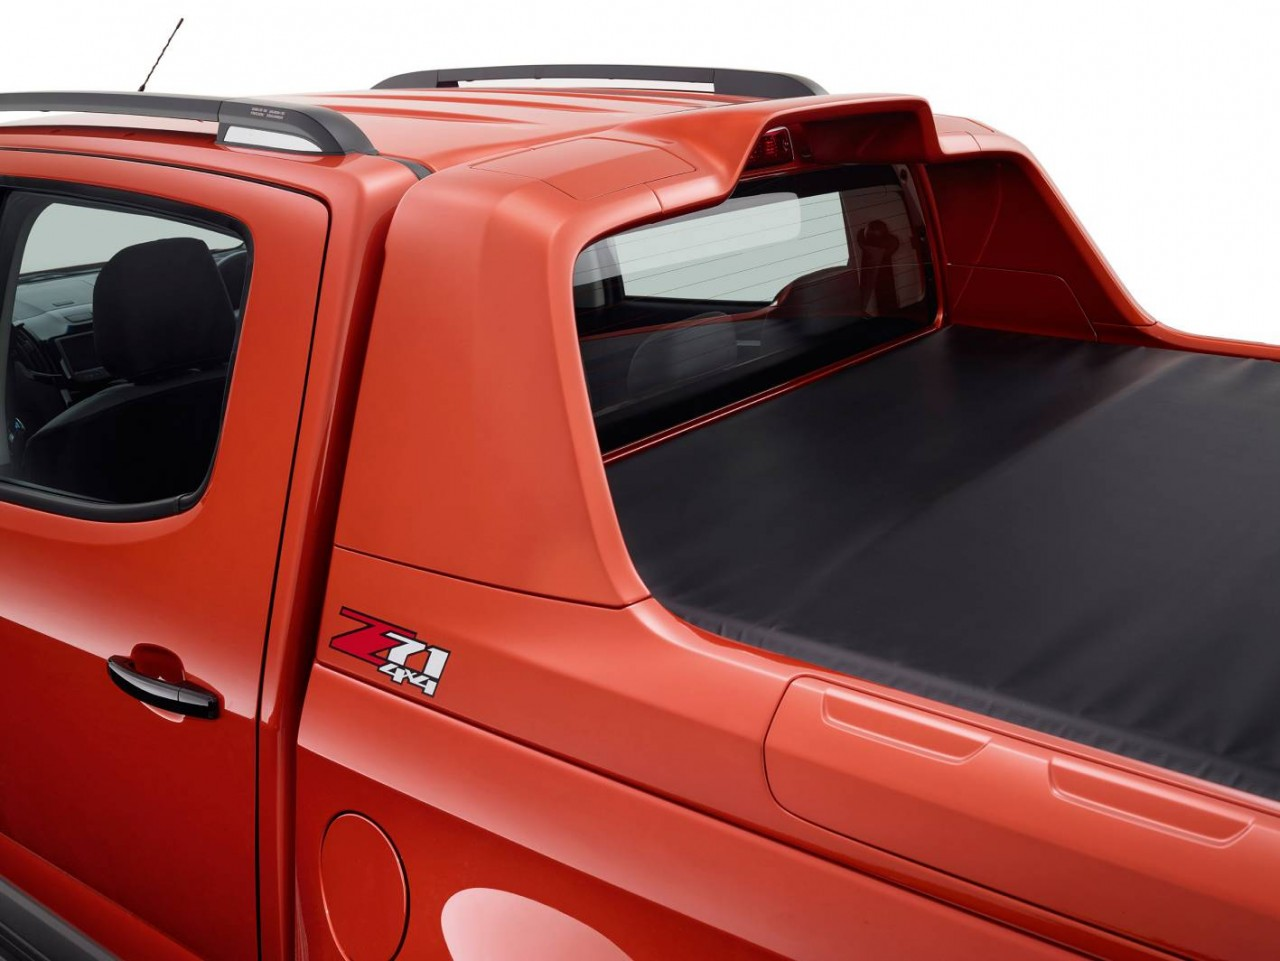 2015 Holden Colorado Z71 sports edition on sale from ...